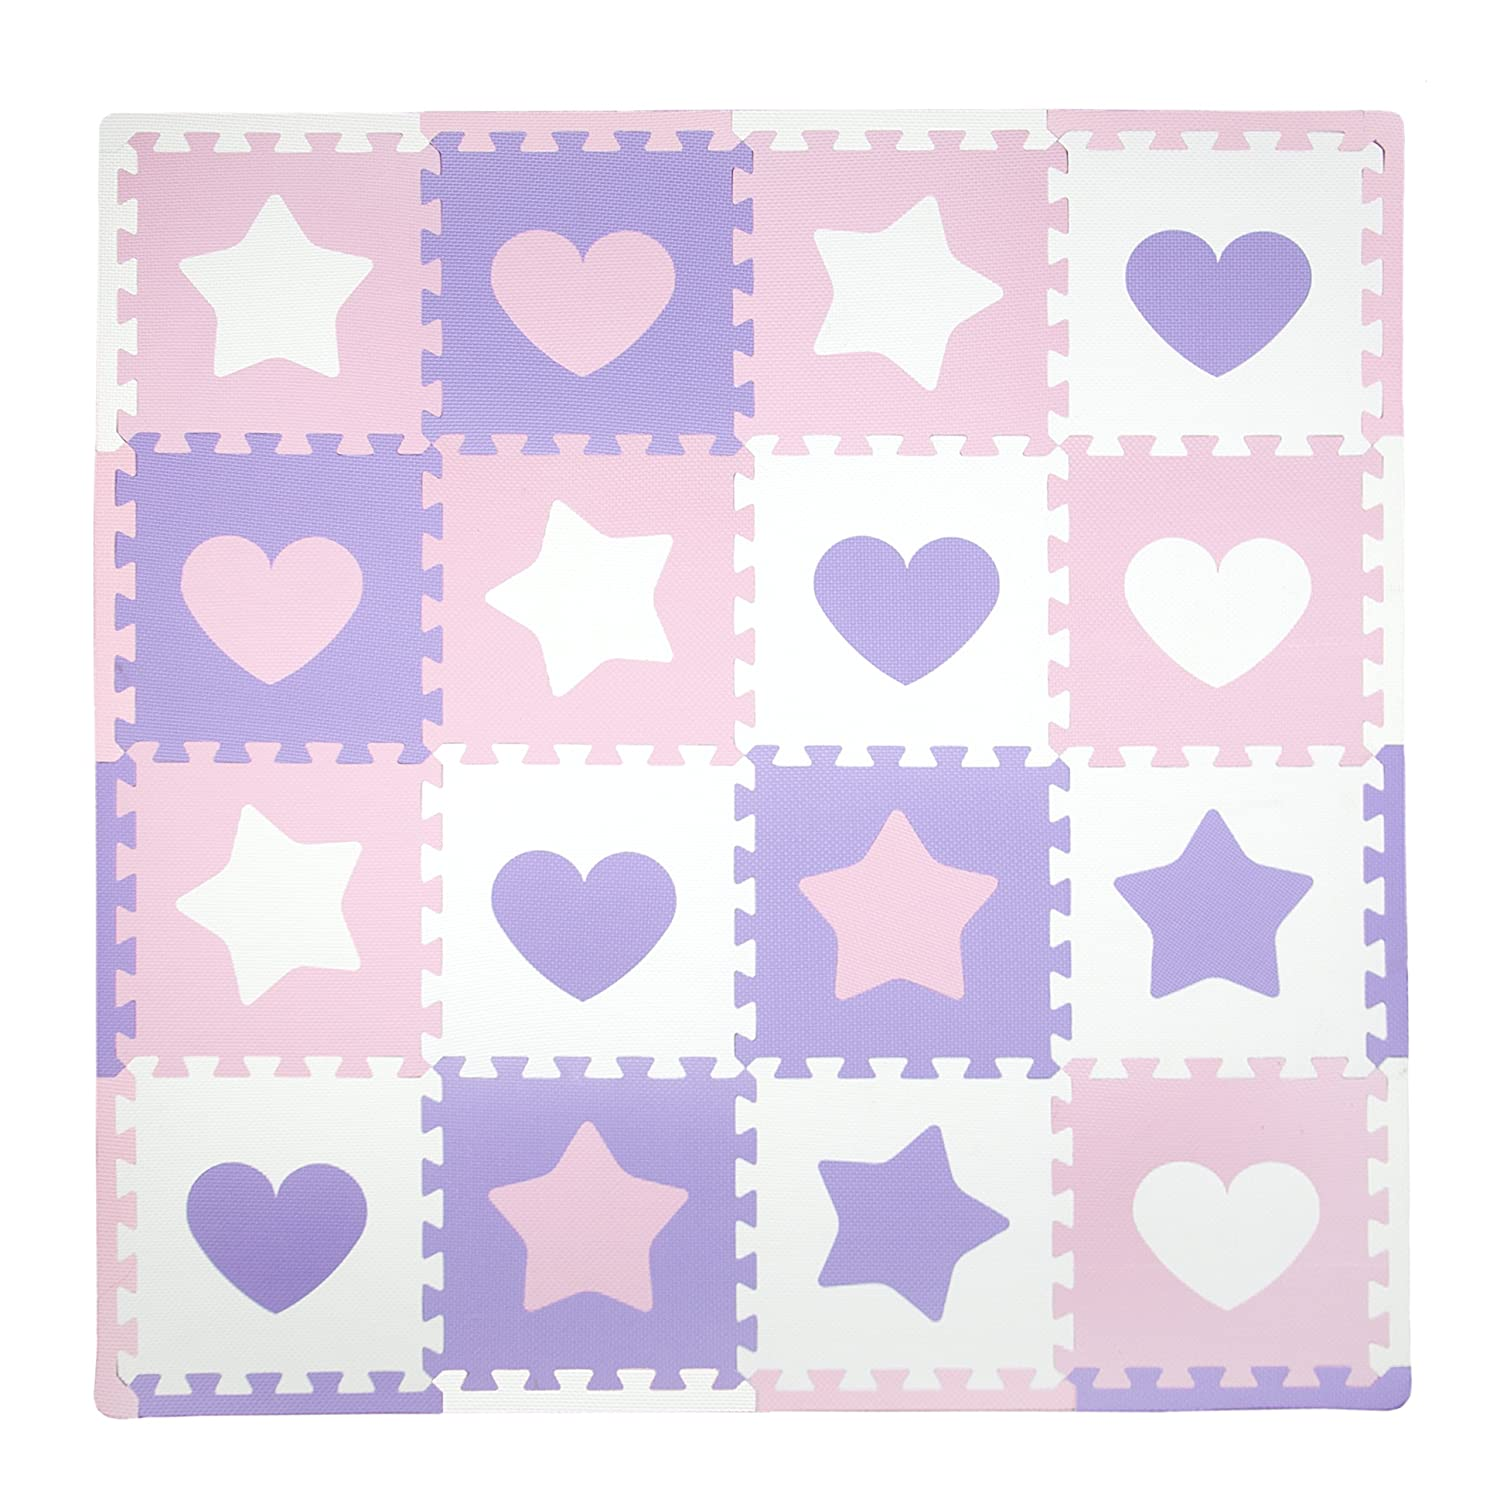 Tadpoles 16 Sq Ft Hearts and Stars Playmat Set, Pink/Purple/White cpmsev145